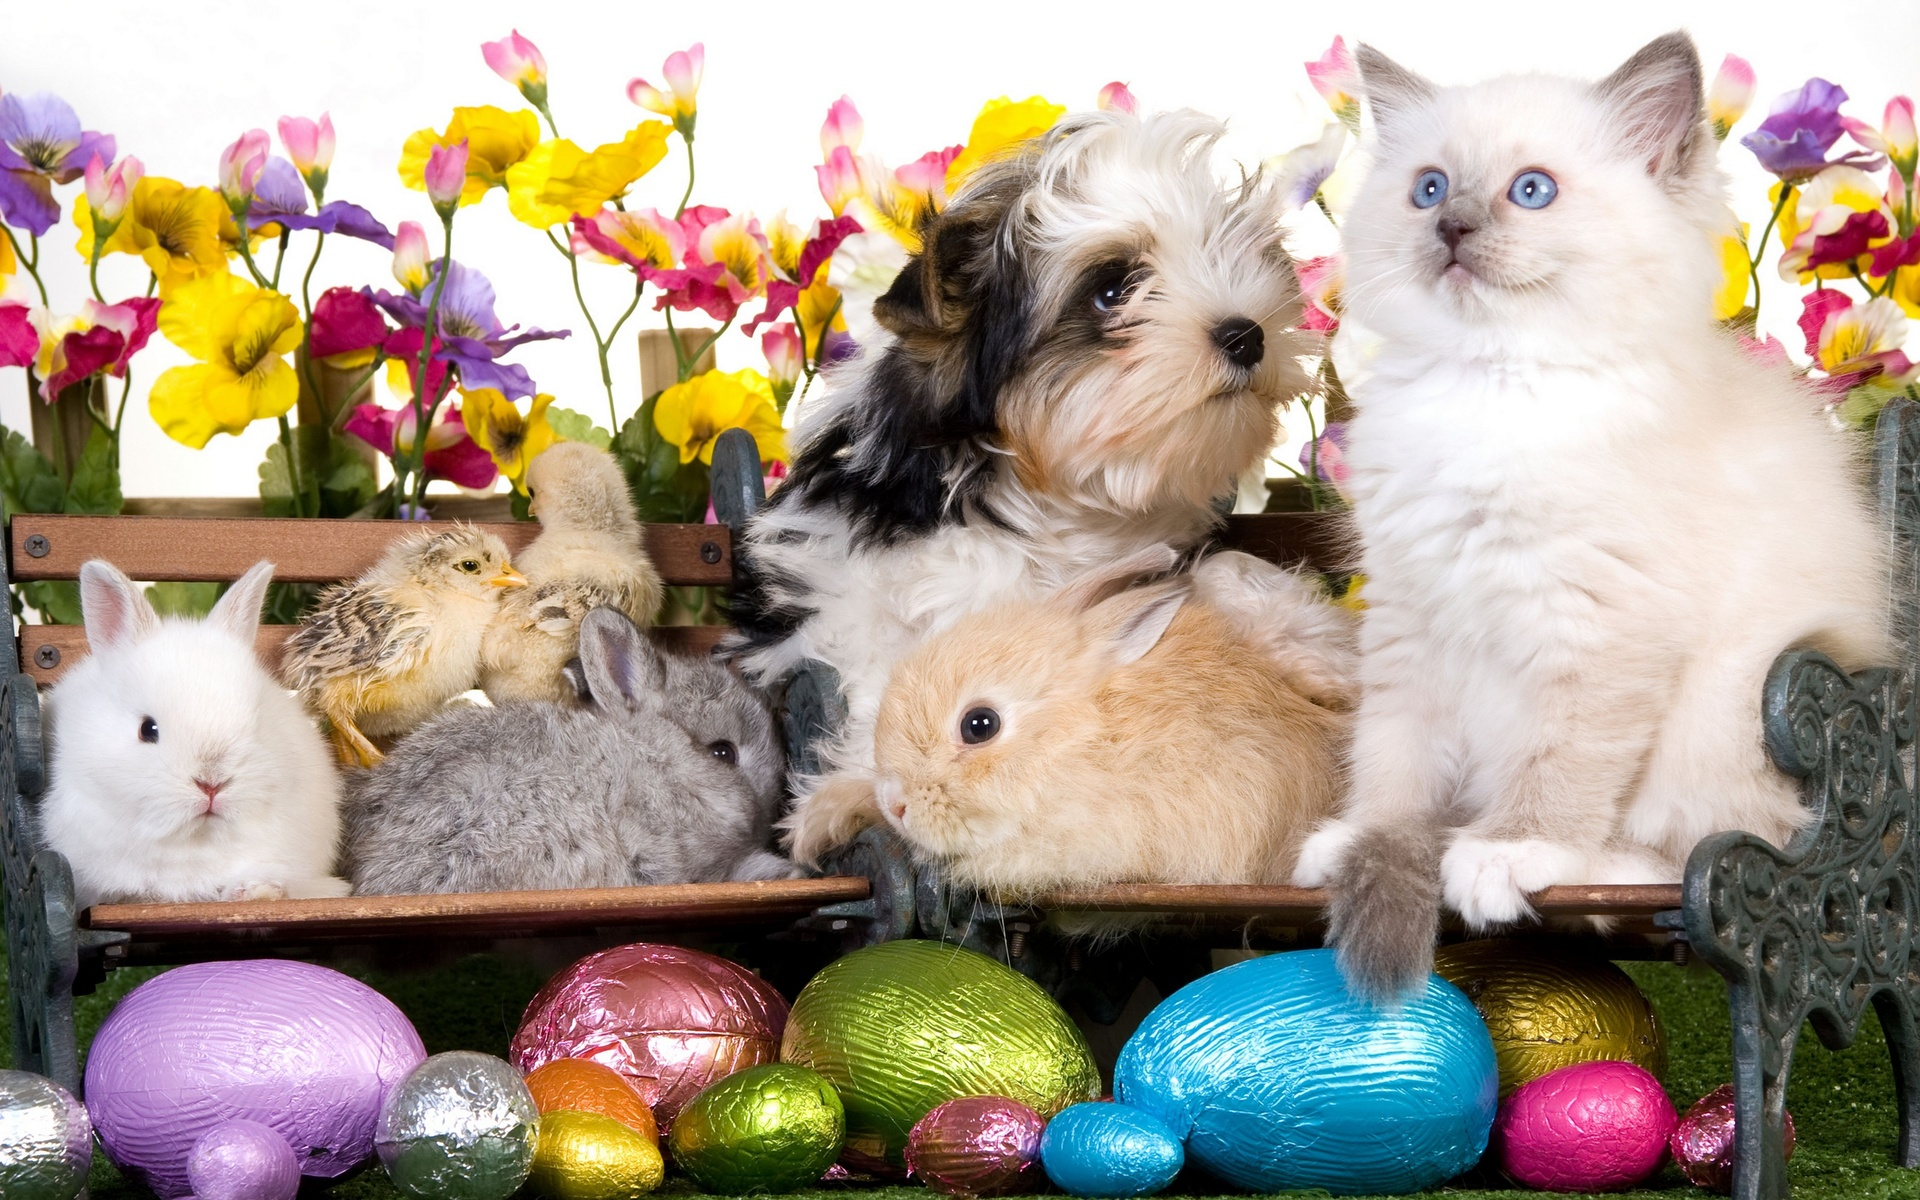 Kitten dog puppy rabbits chickens eggs flowers easter wallpaper 1920x1200